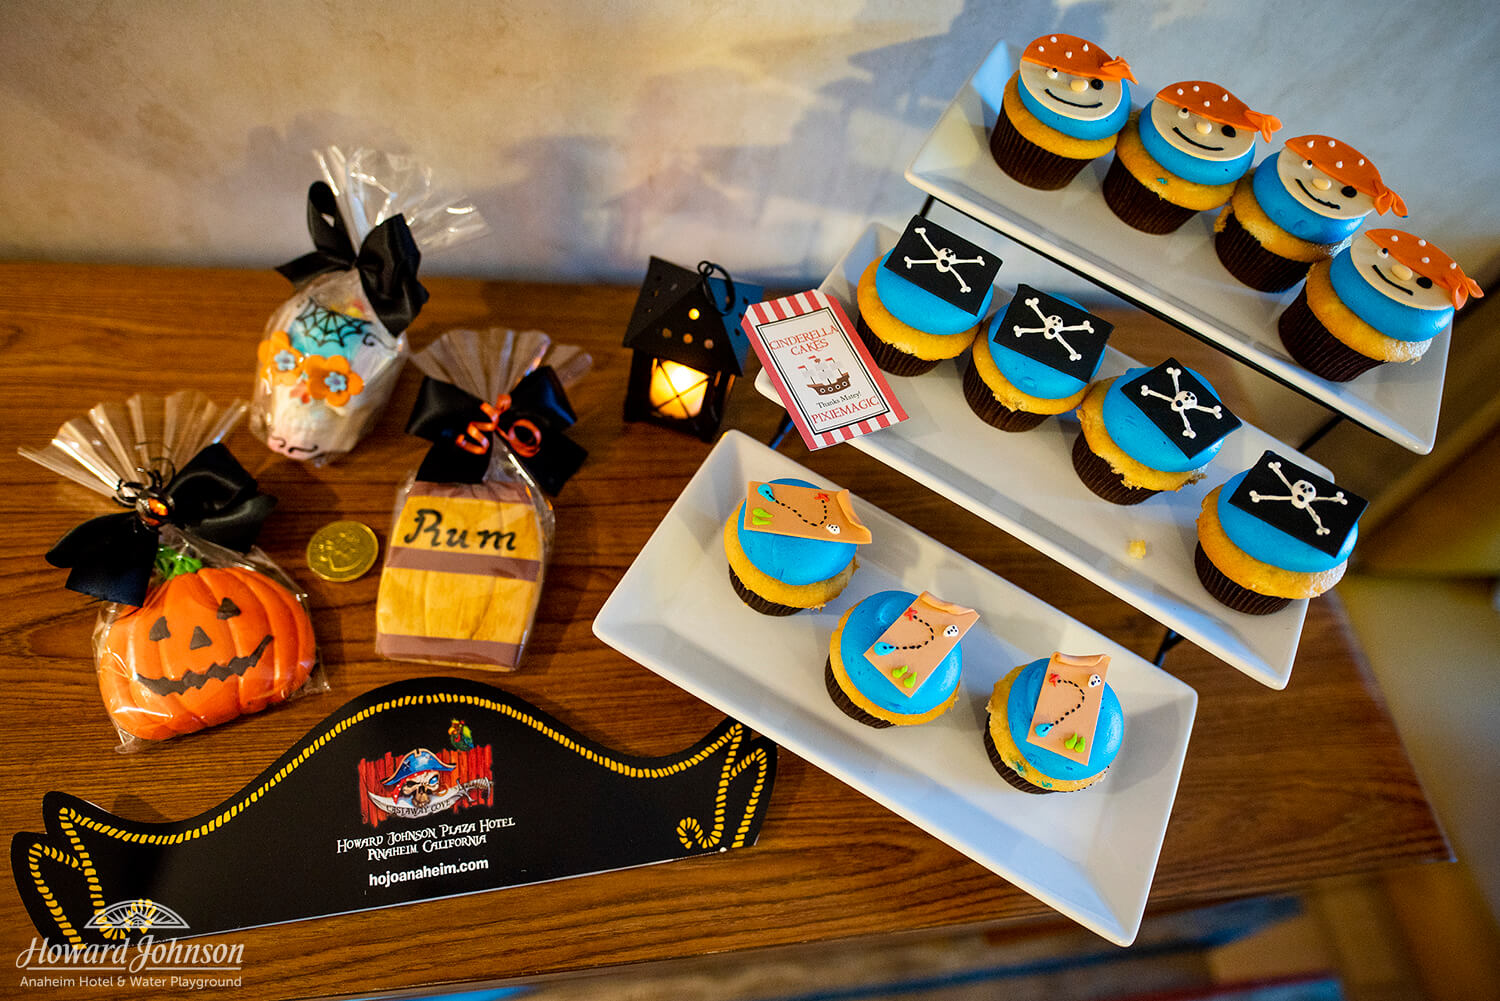 a collection of pirate and halloween themed cookies and cupcakes lay on a table